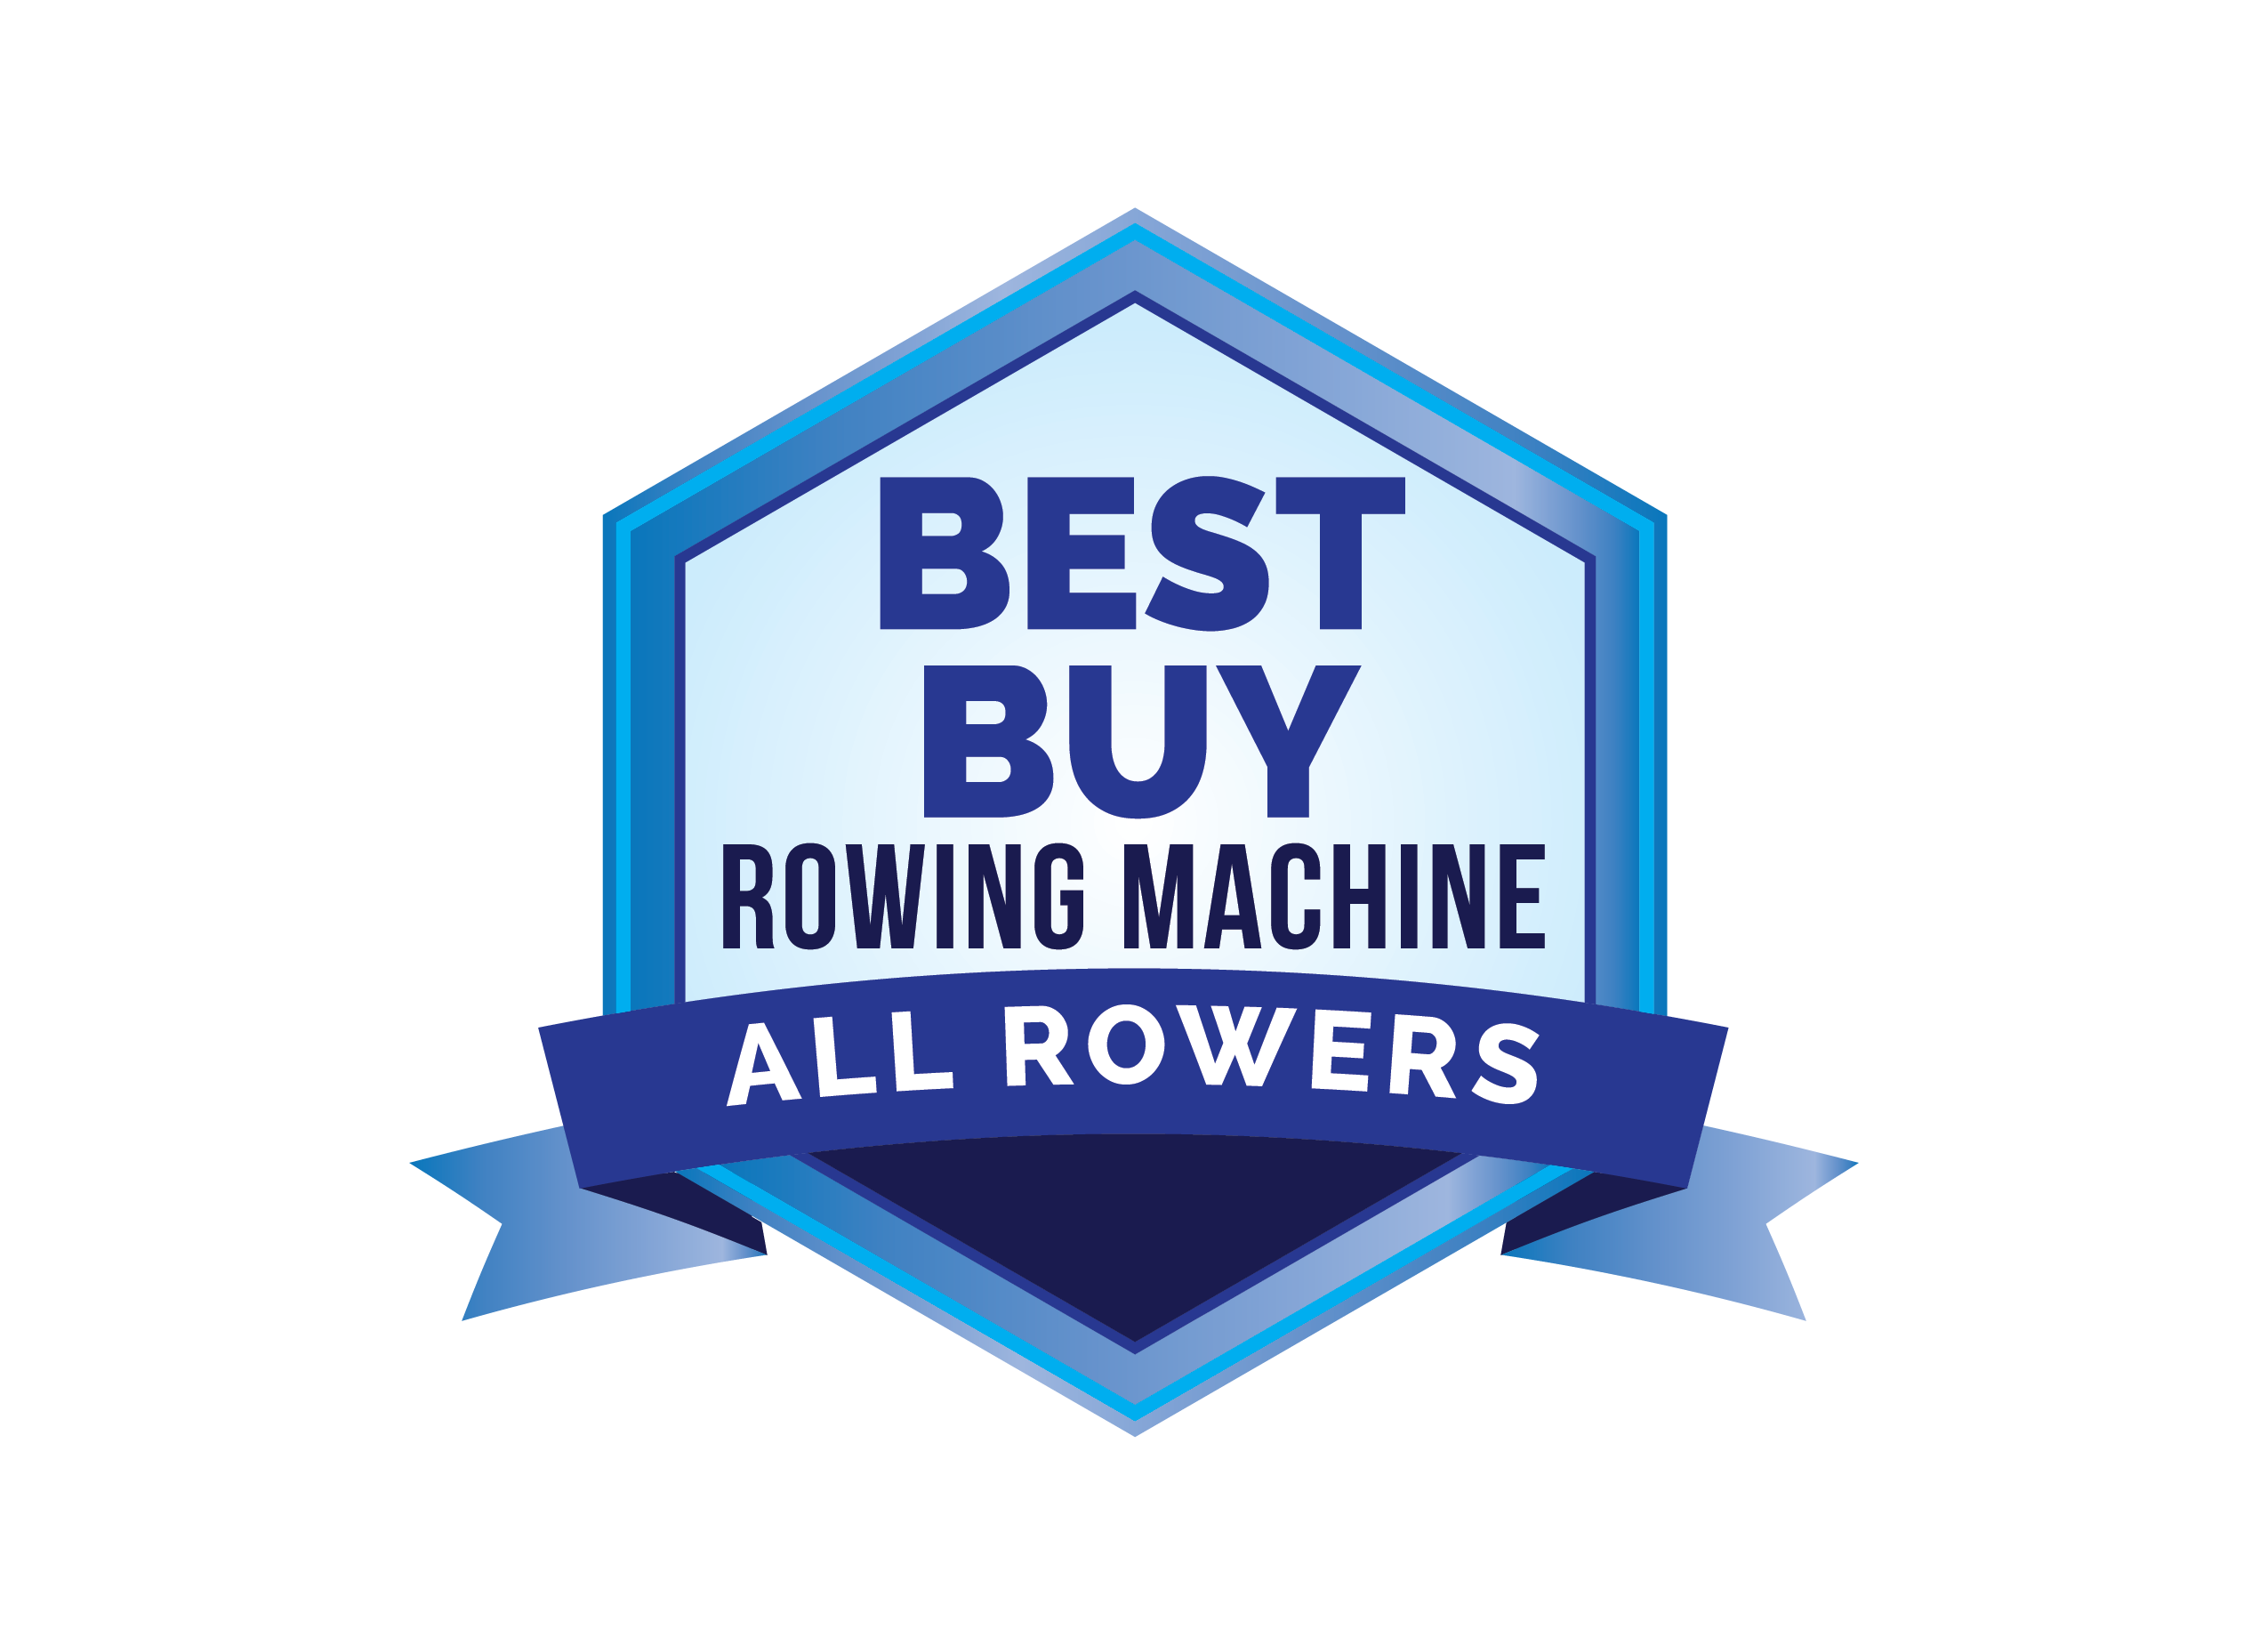 Best Rowing Machines 2020 - All Rowers Badge